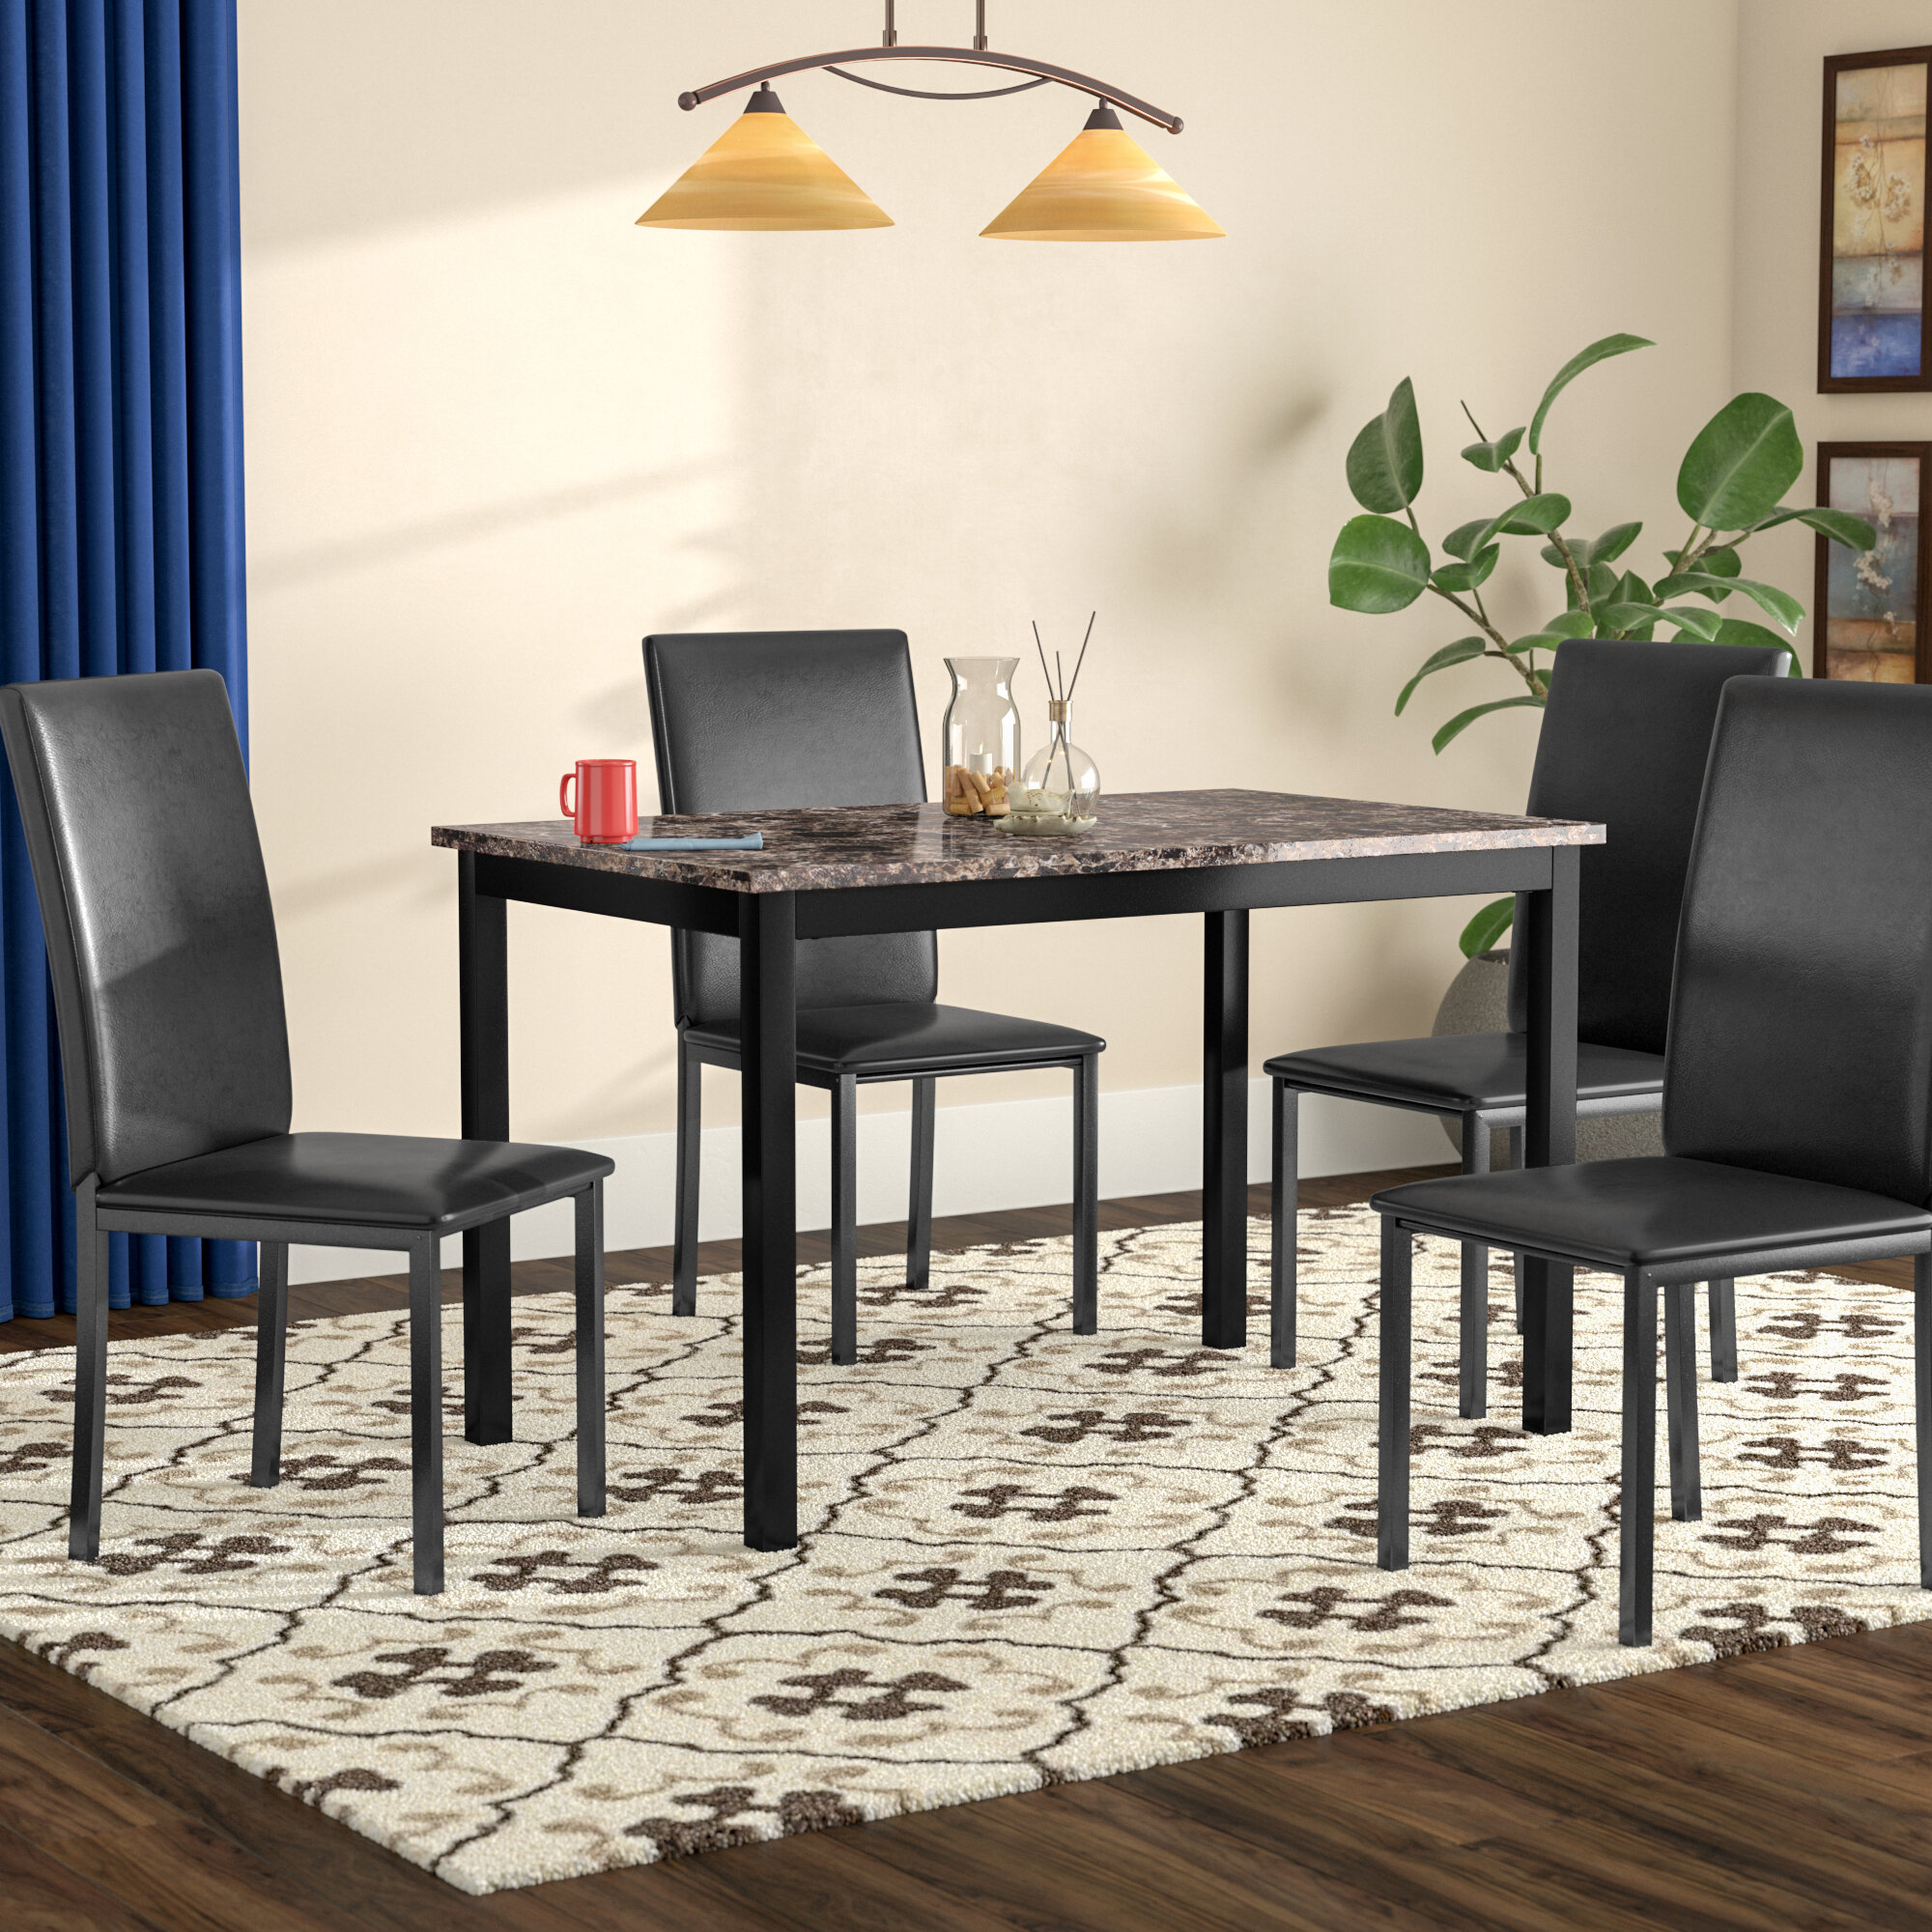 Red Barrel Studio Noyes 5 Piece Dining Set Reviews Wayfair